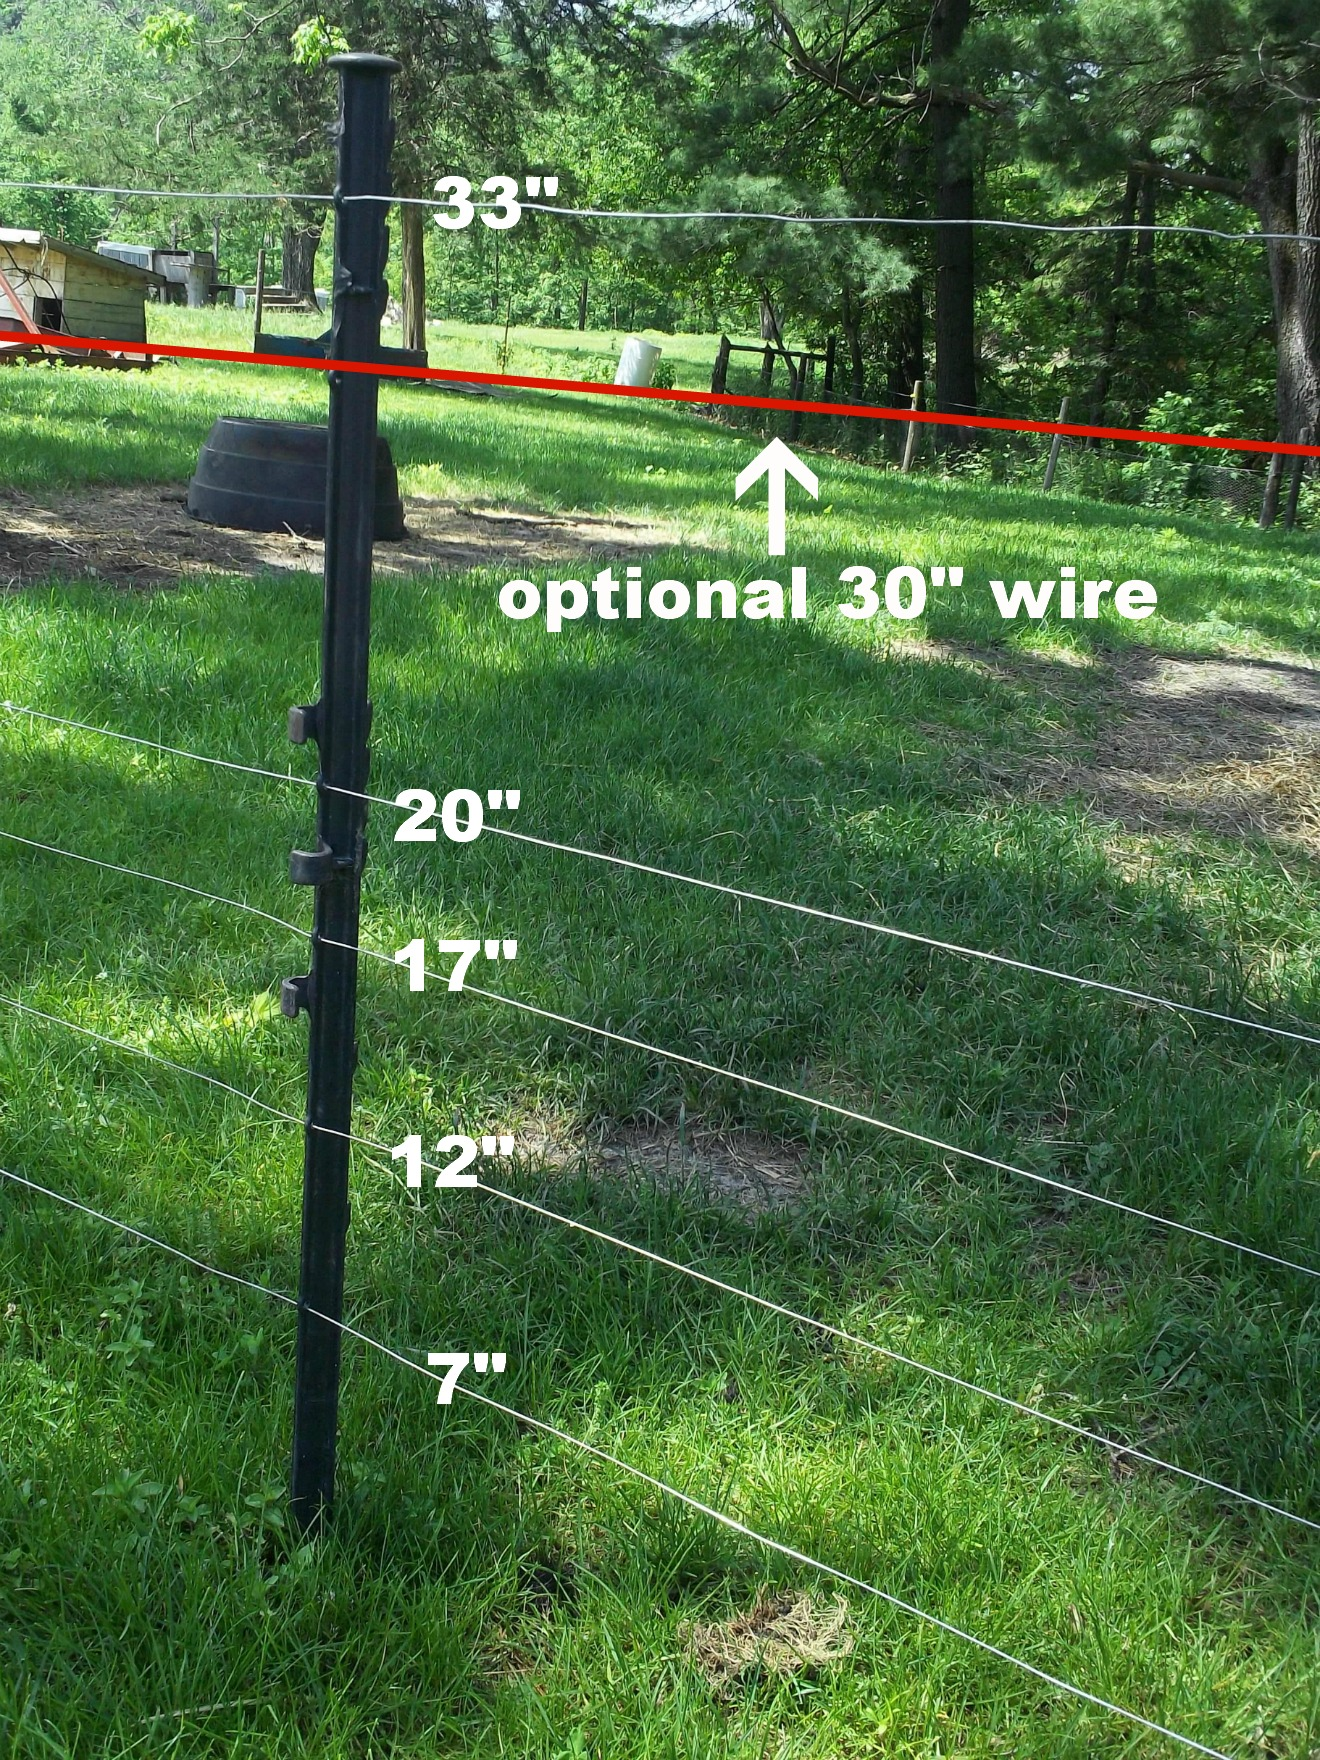 Tutorial Handy Dandy Fence Gates Our Prairie Nest A Simple Life Joining Electric Fencing Wire Next